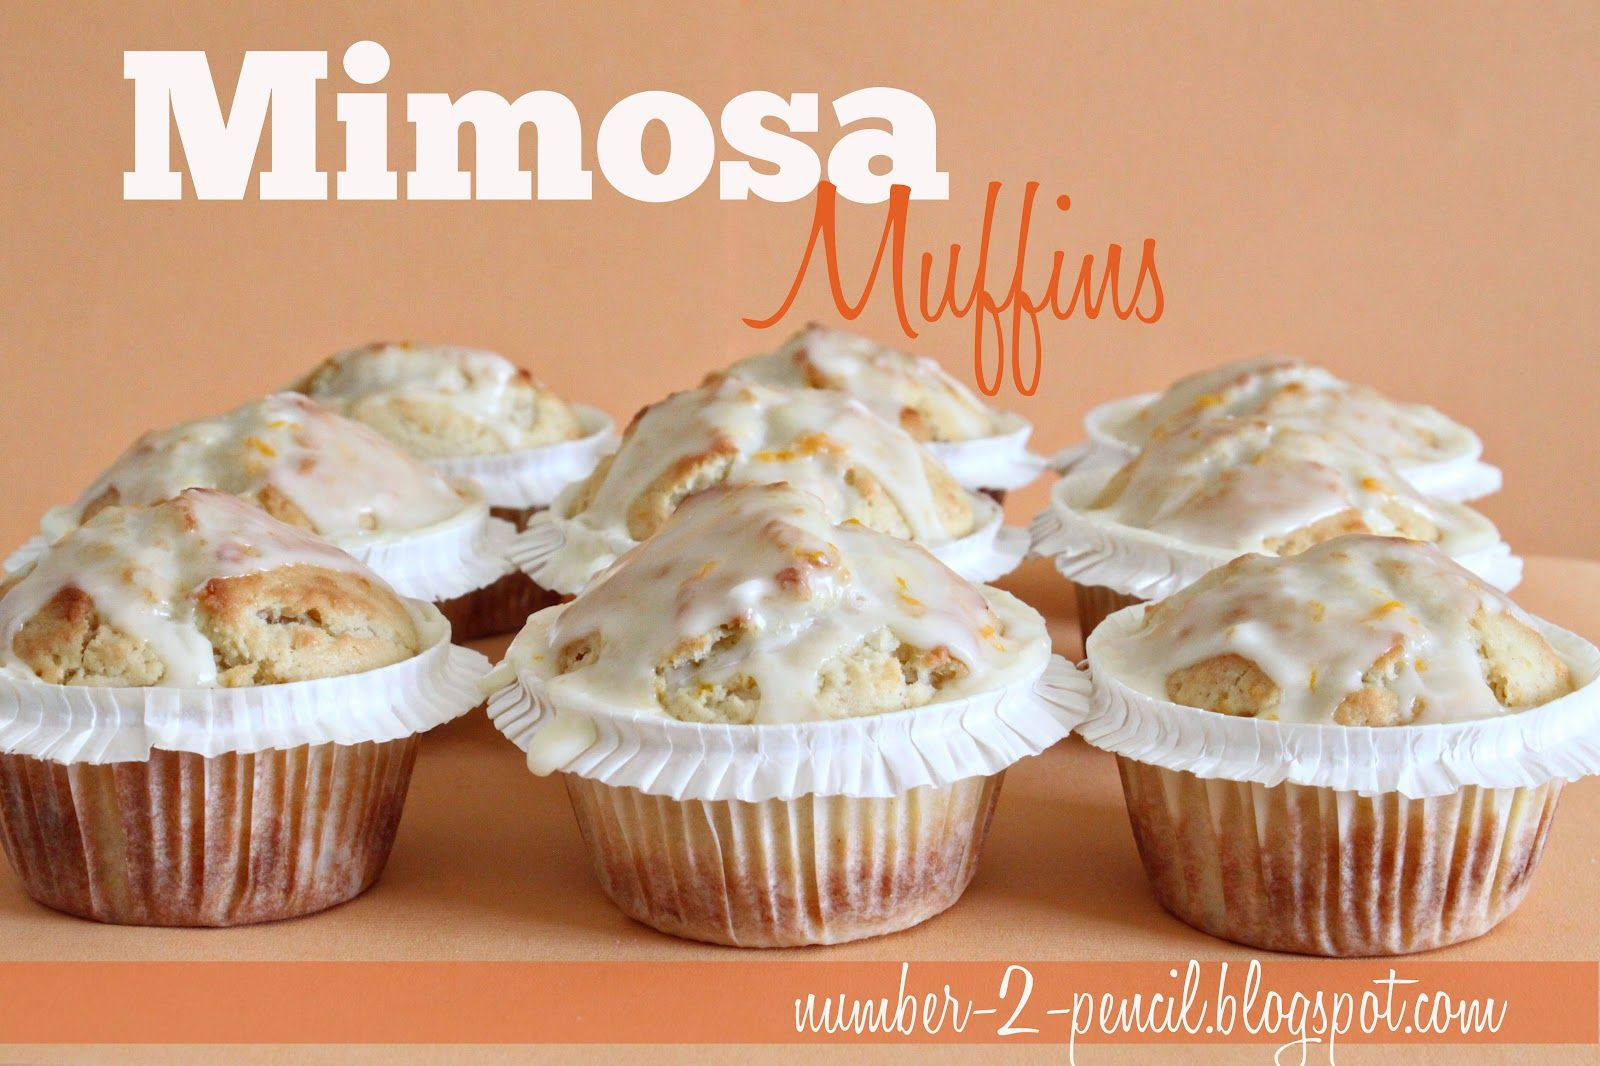 Mimosa Muffins created by No. 2 Pencil via @InspiredbyCharm